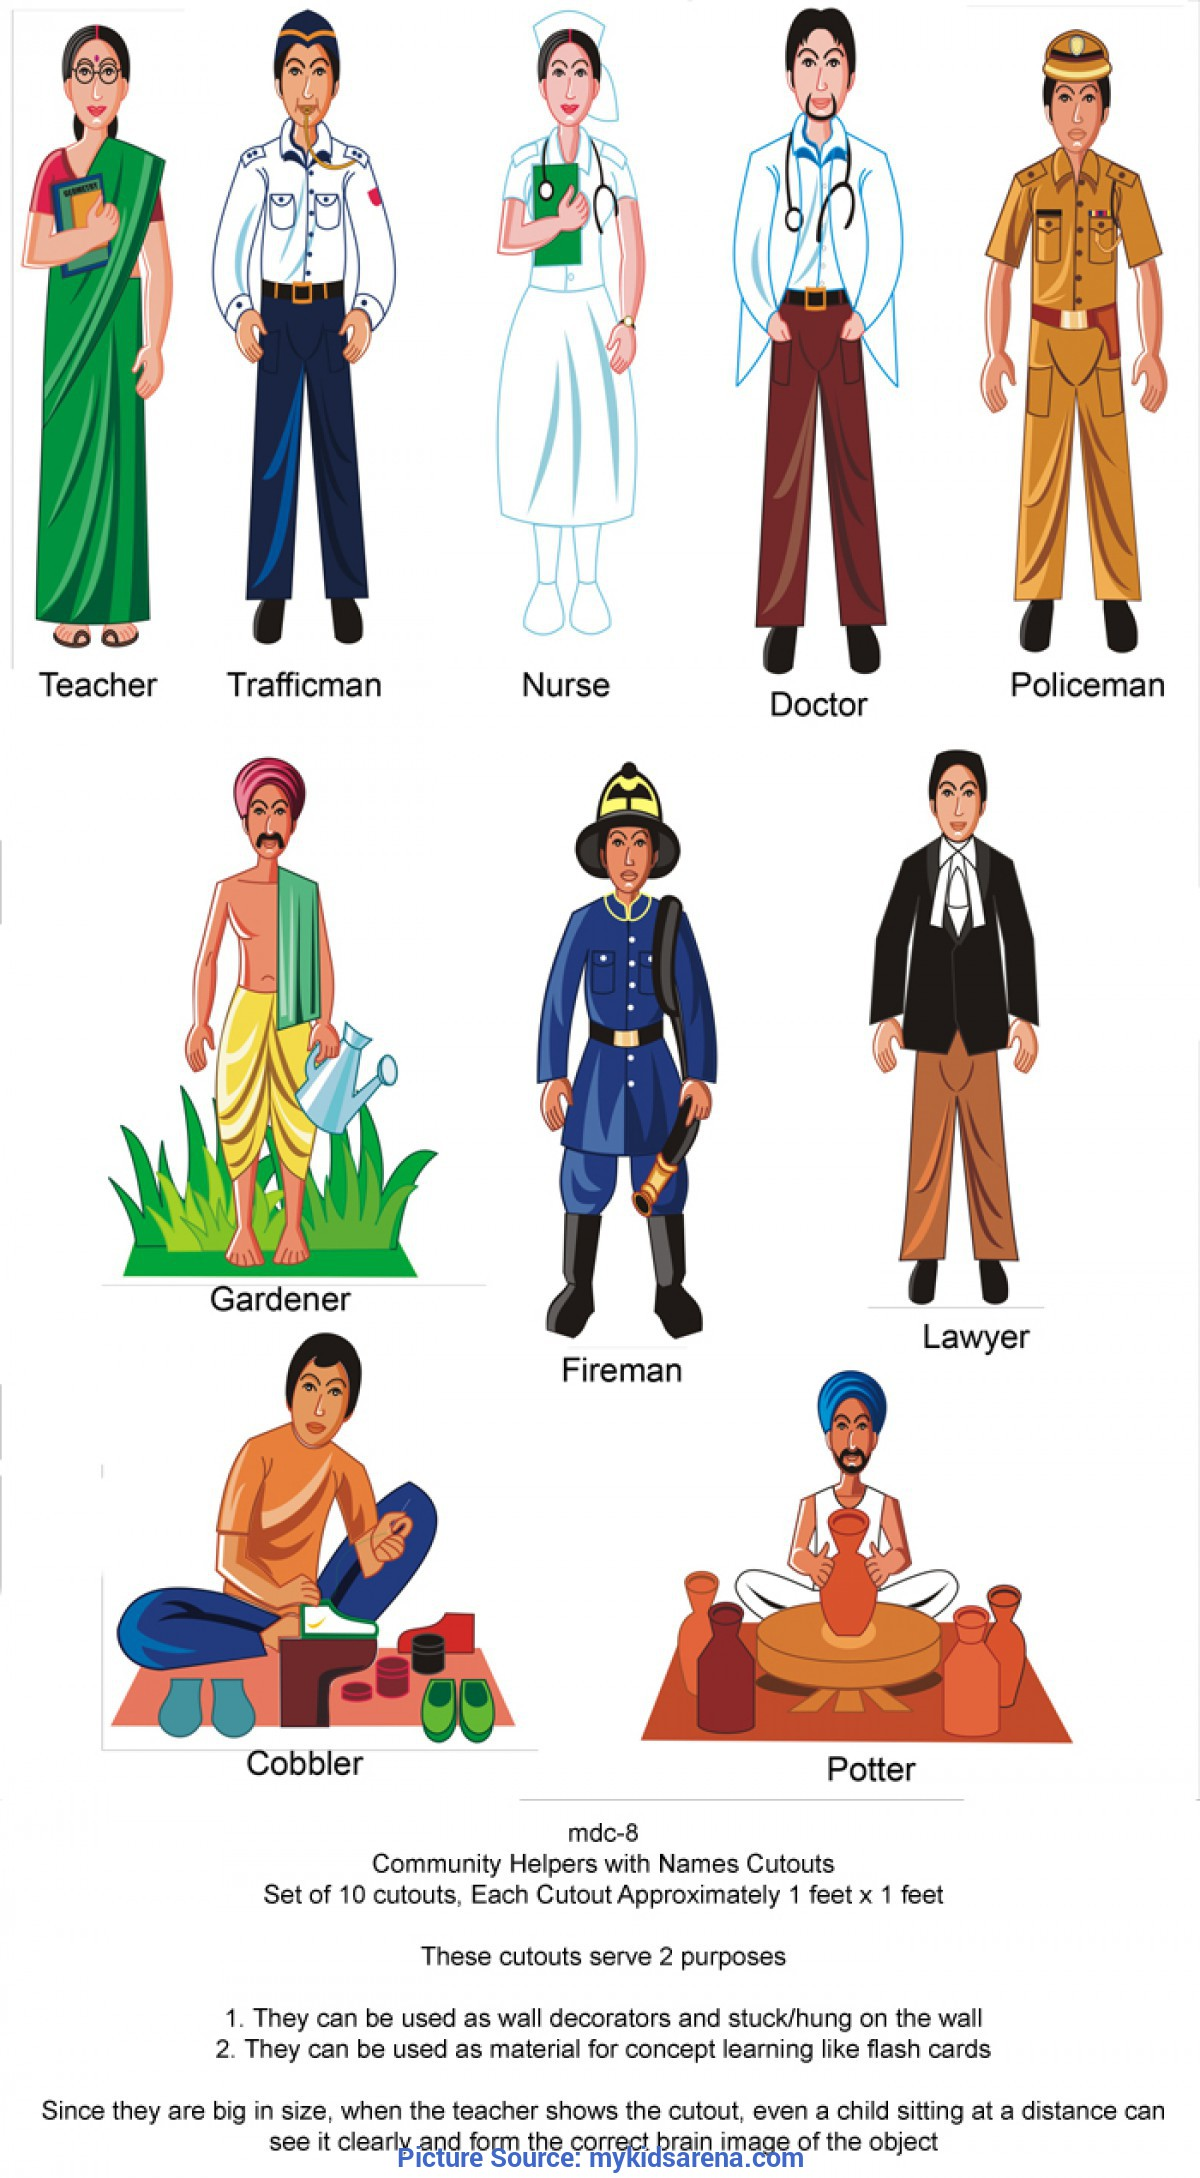 Special Community Helpers Cut Outs Play School Class Room Decoration And Wall Decoration And Wall Ch